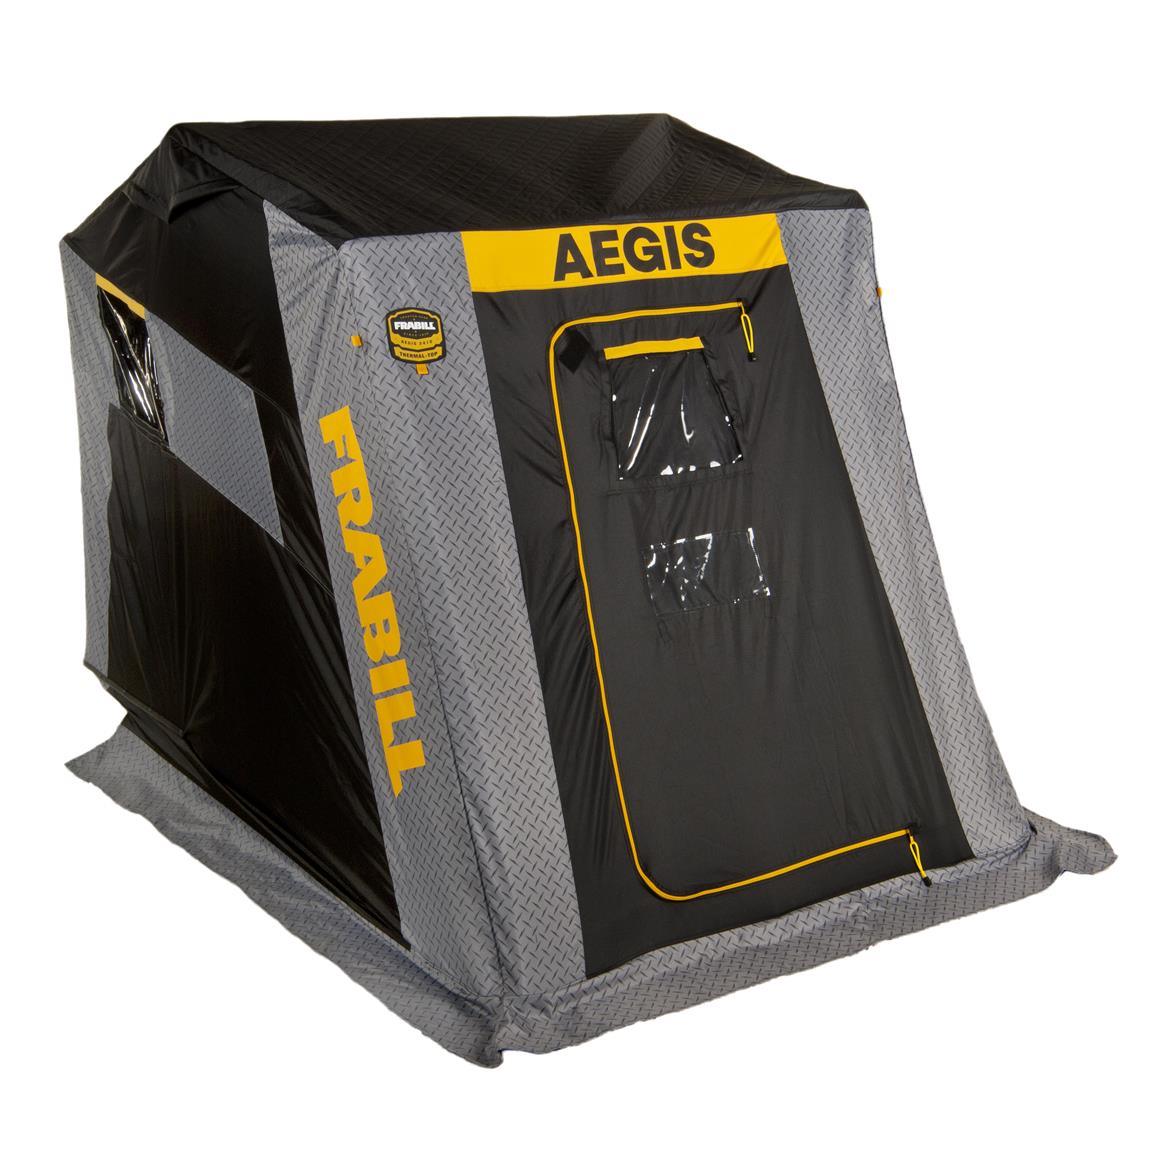 Frabill Aegis 2110 Ice Shelter, Insulated, Flip Over, 2 Person